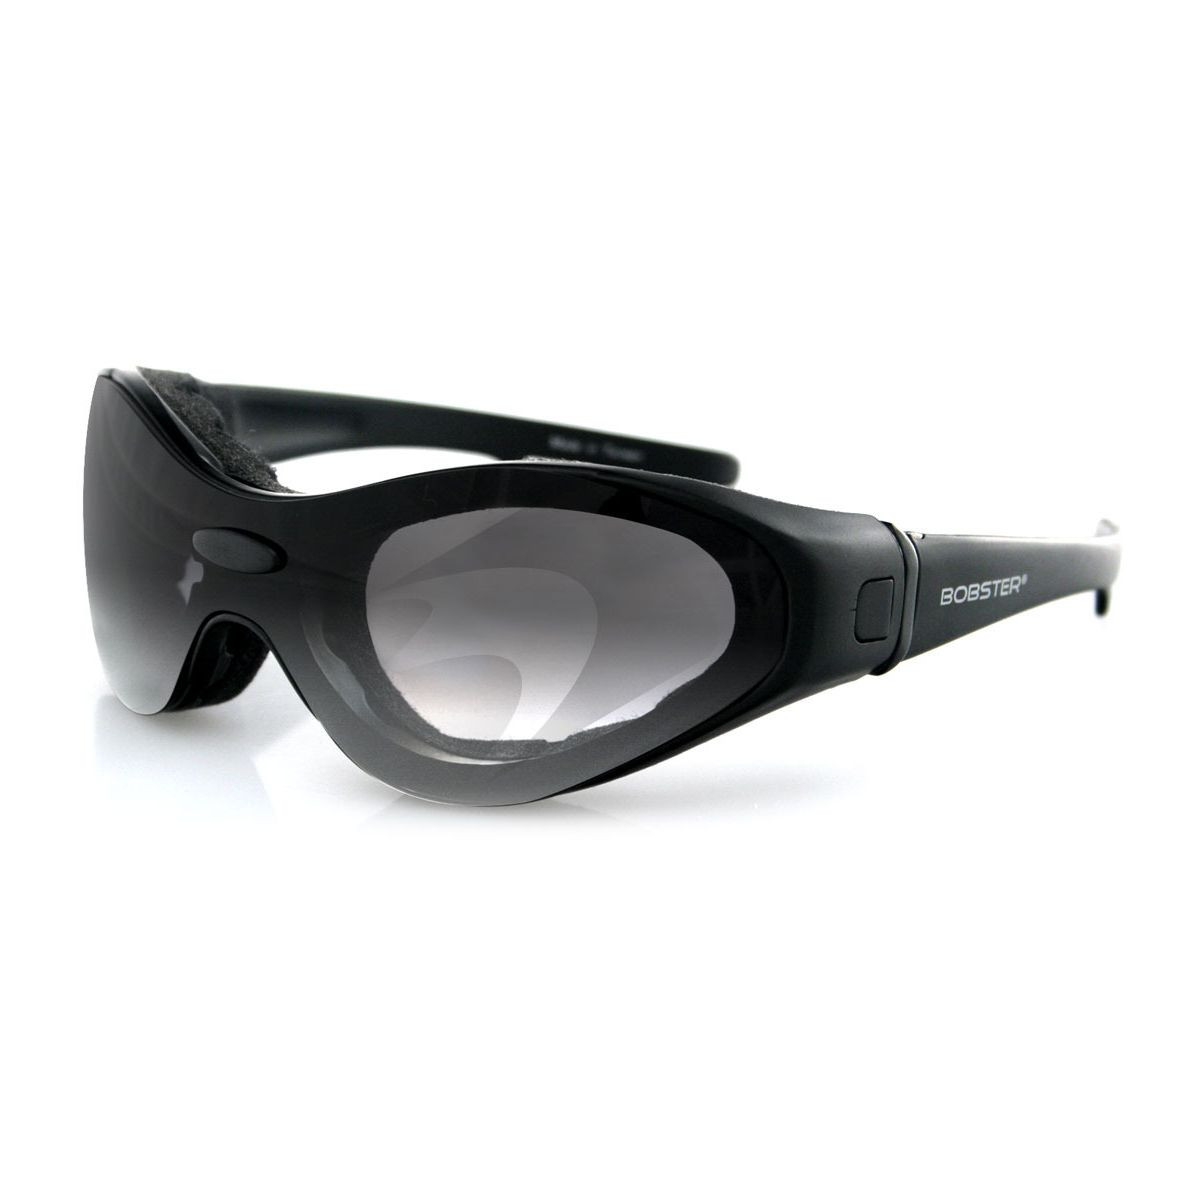 60c8a5ef489 Bobster Spektrax Convertible Goggles   Sunglasses - Motorcycle House